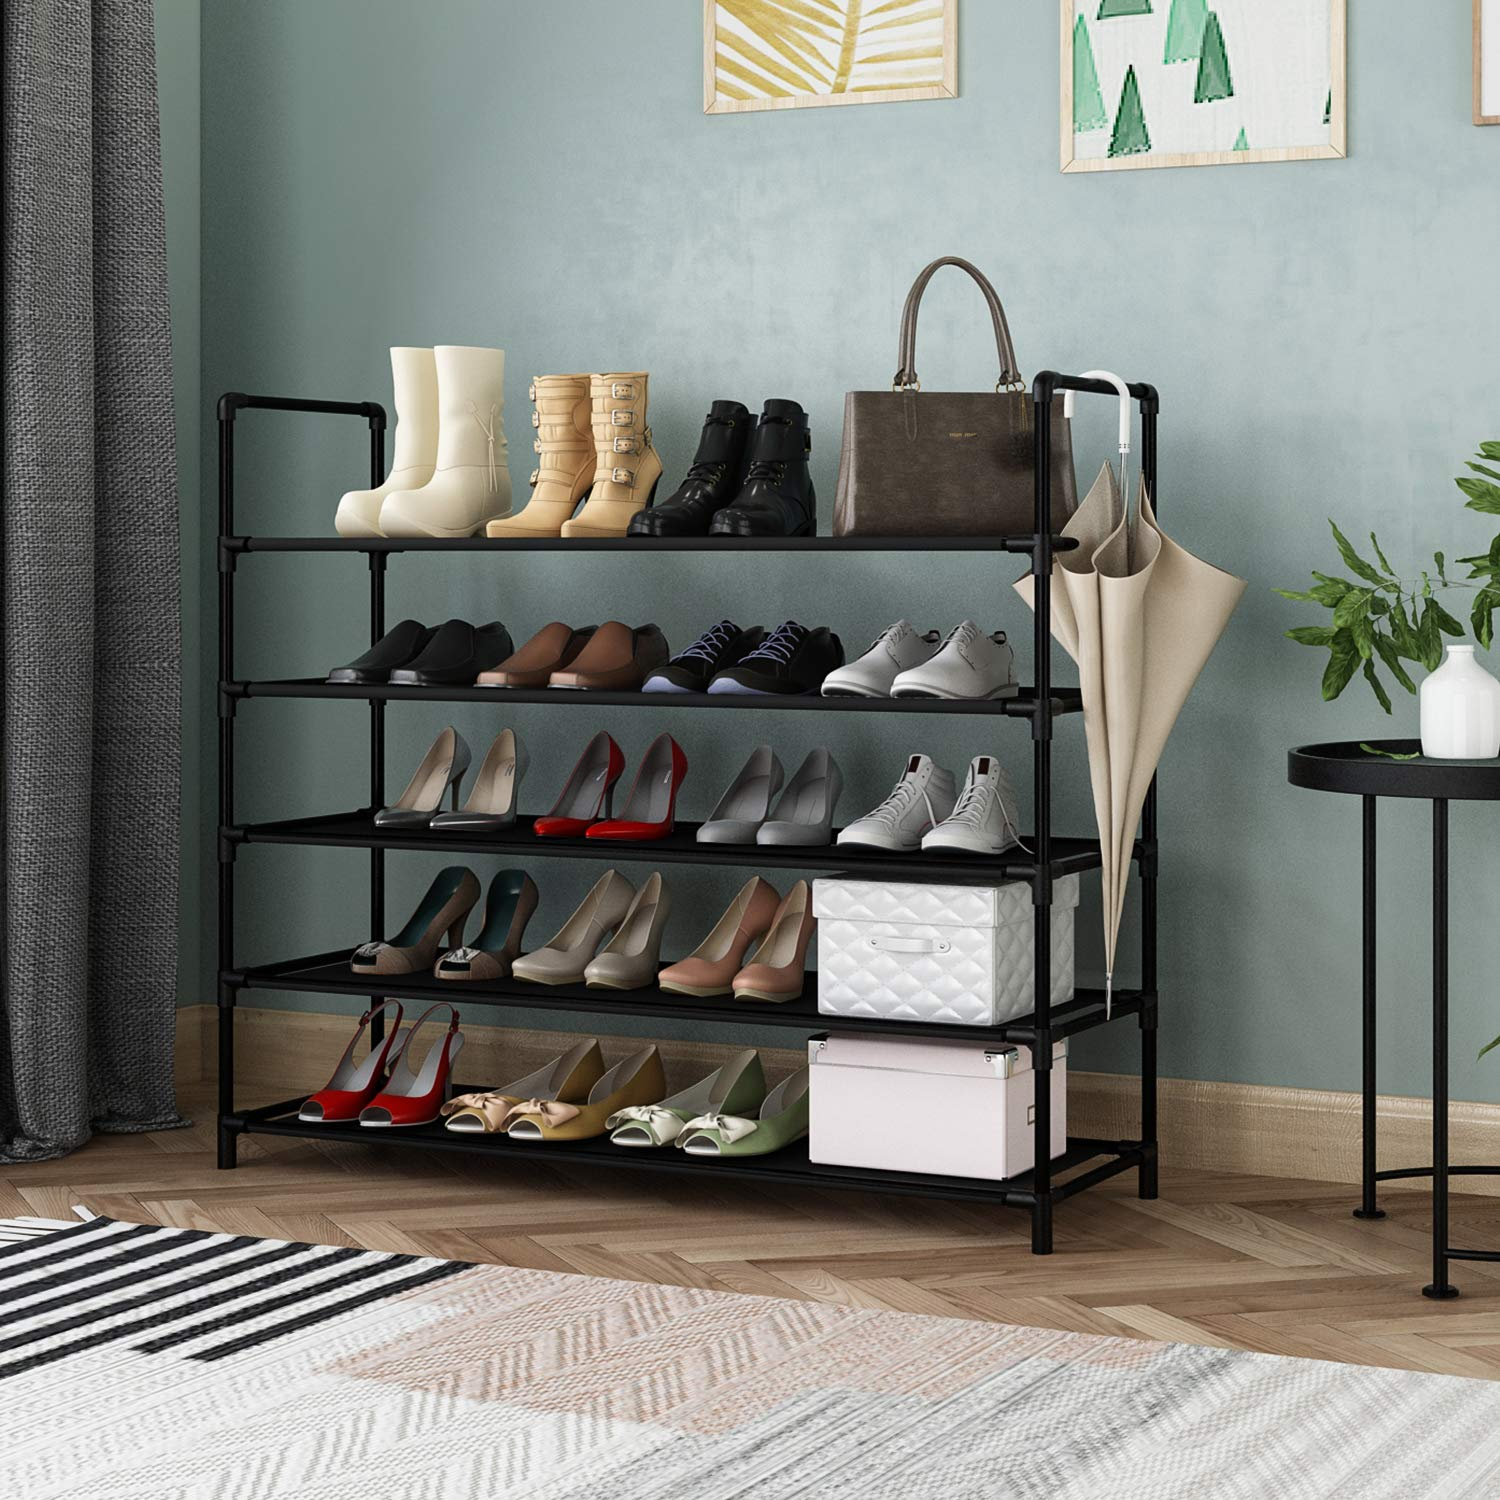 KIKIONLIFE 5 Tiers Shoe Rack Tower Storage Organizer Cabinet Black